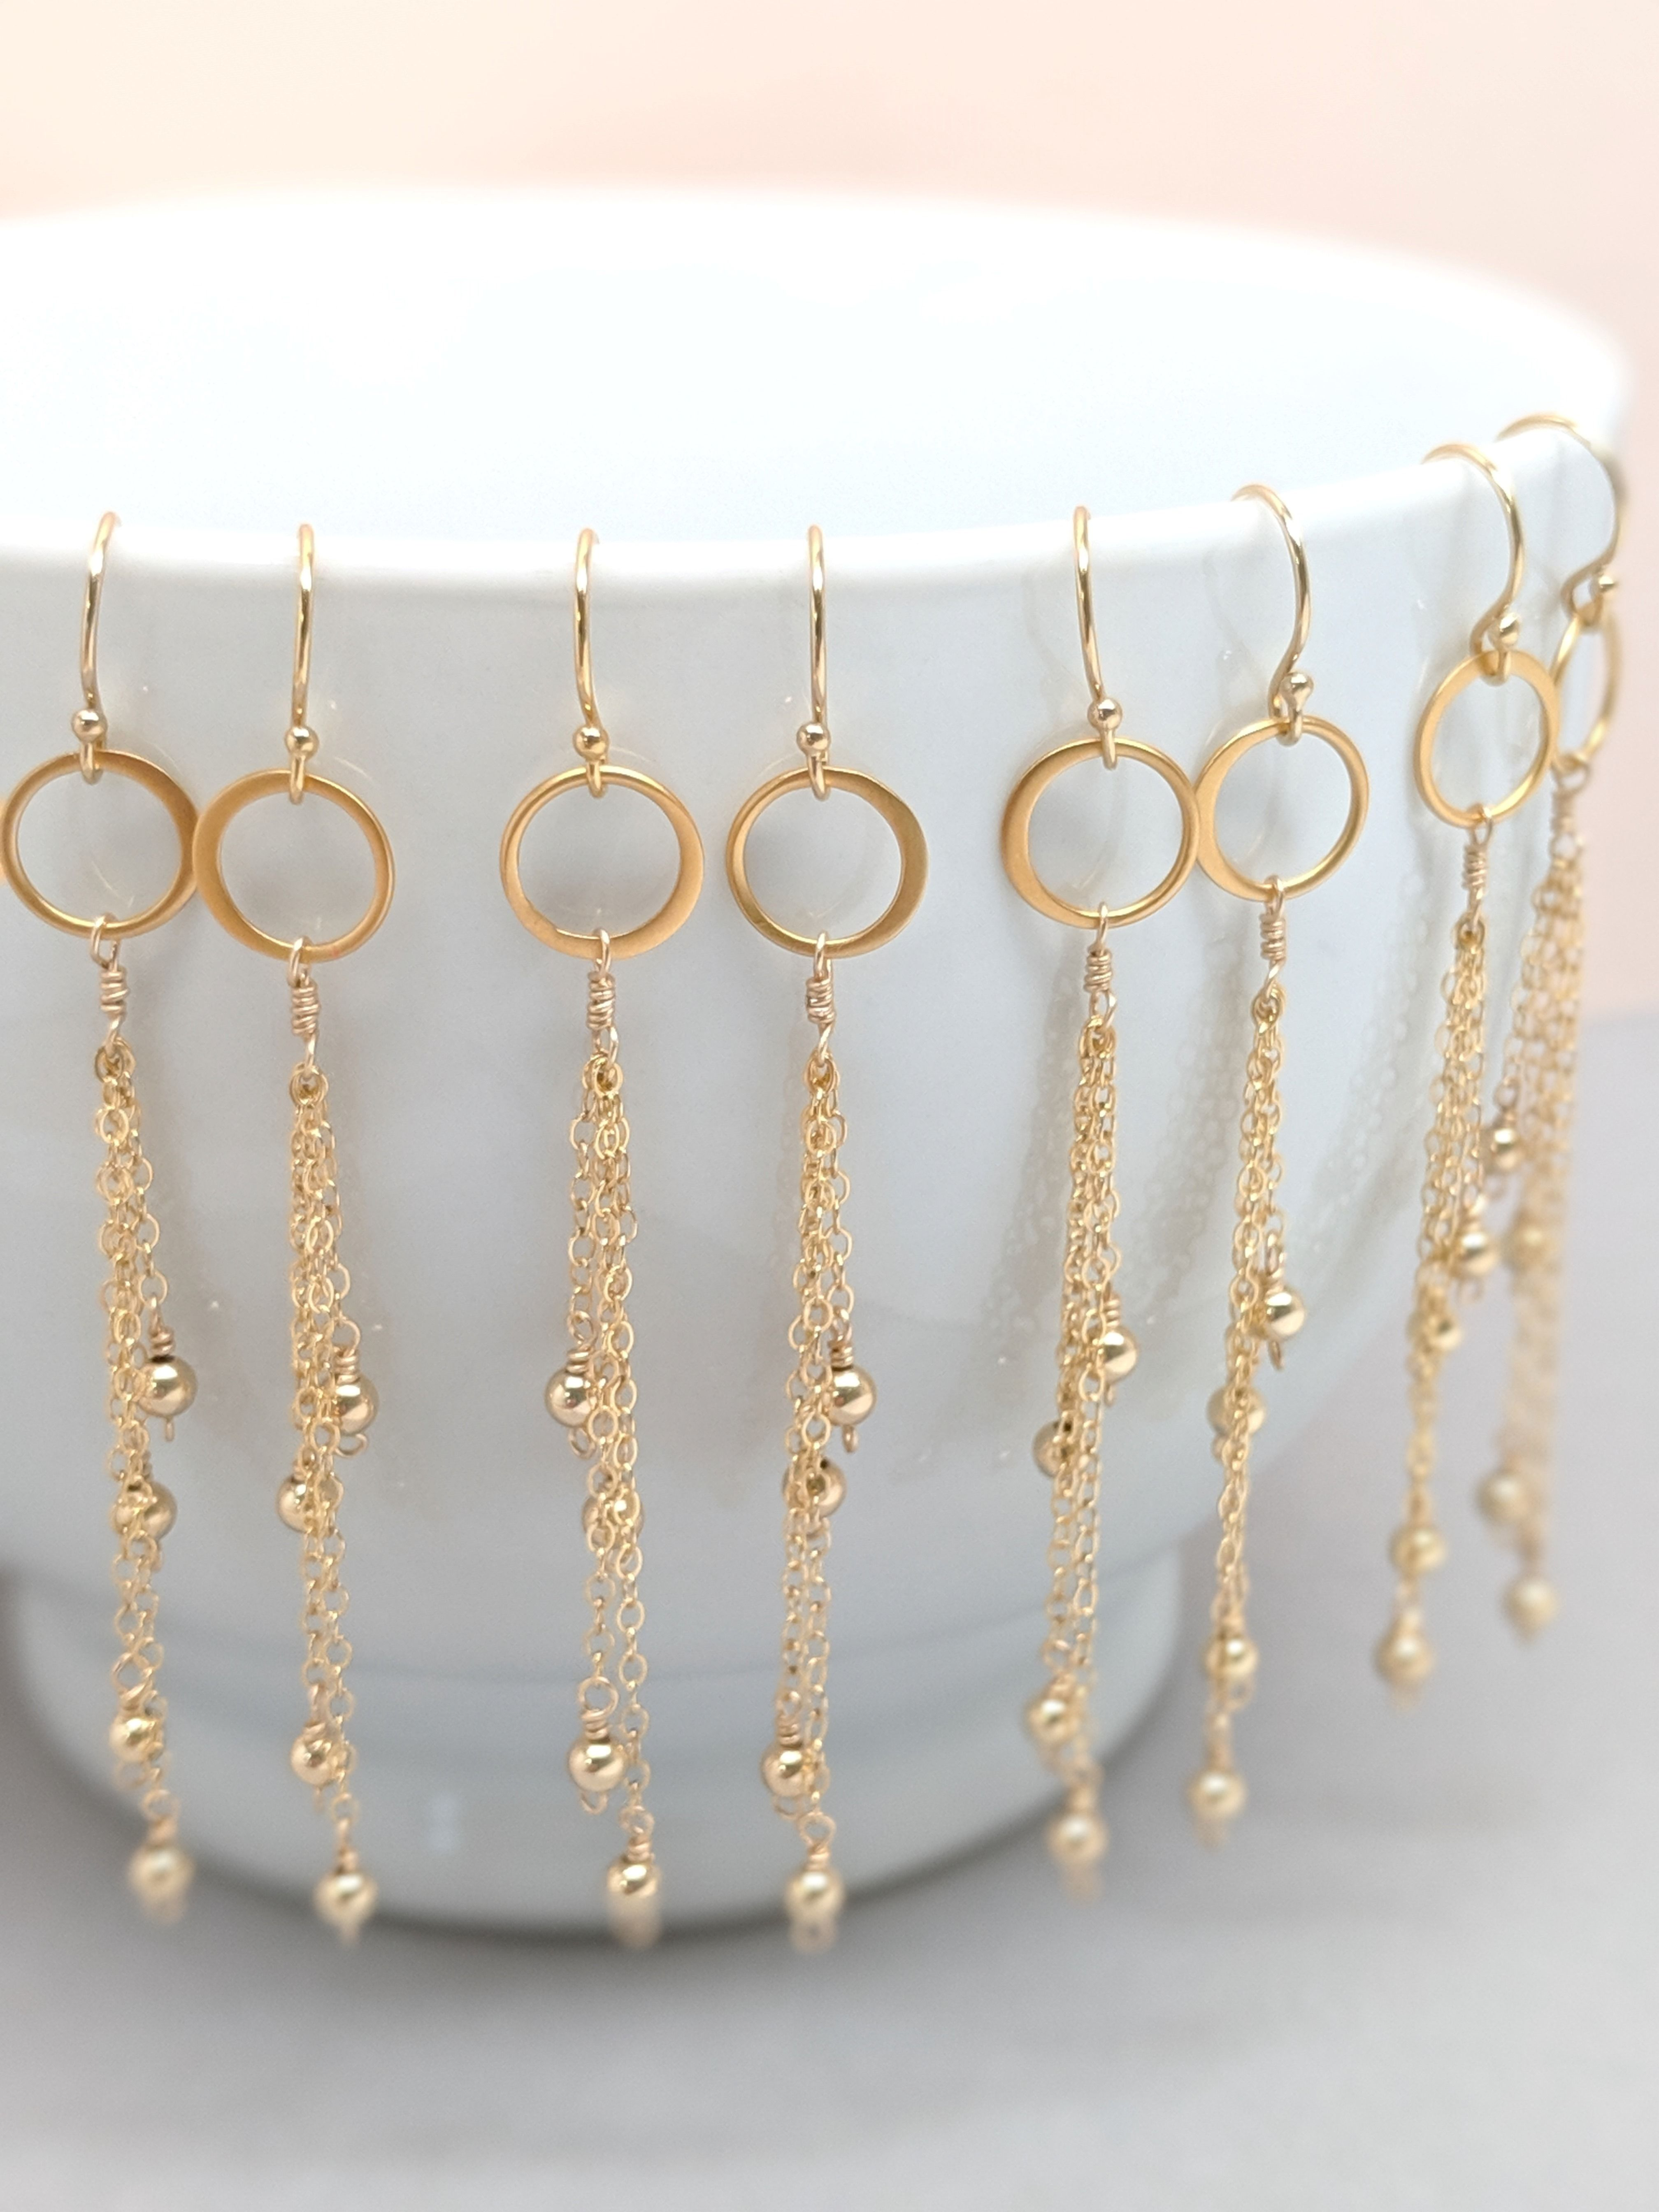 You will love these long chain dangle earrings. Attached to a dainty circle hoop and tiny gold beads. These come in silver or gold and are perfect for you or make meaningful gifts!